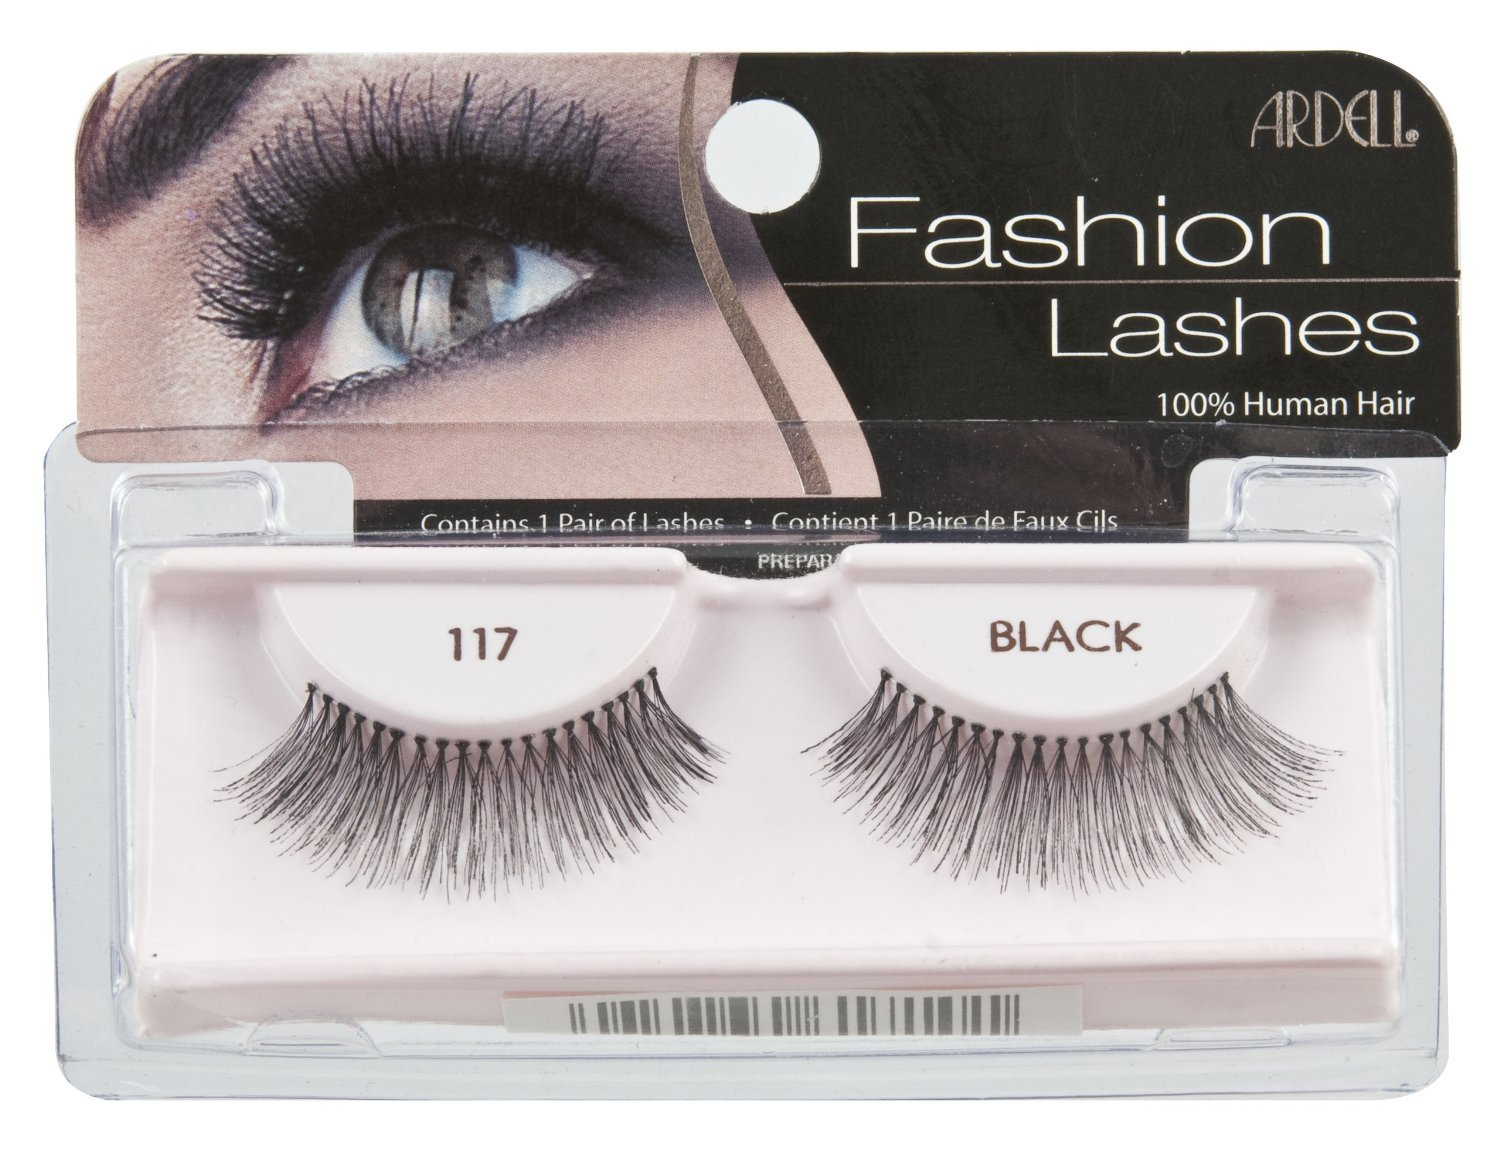 Ardell Fashion Lashes Pair Black - 117 (Pack of 3)